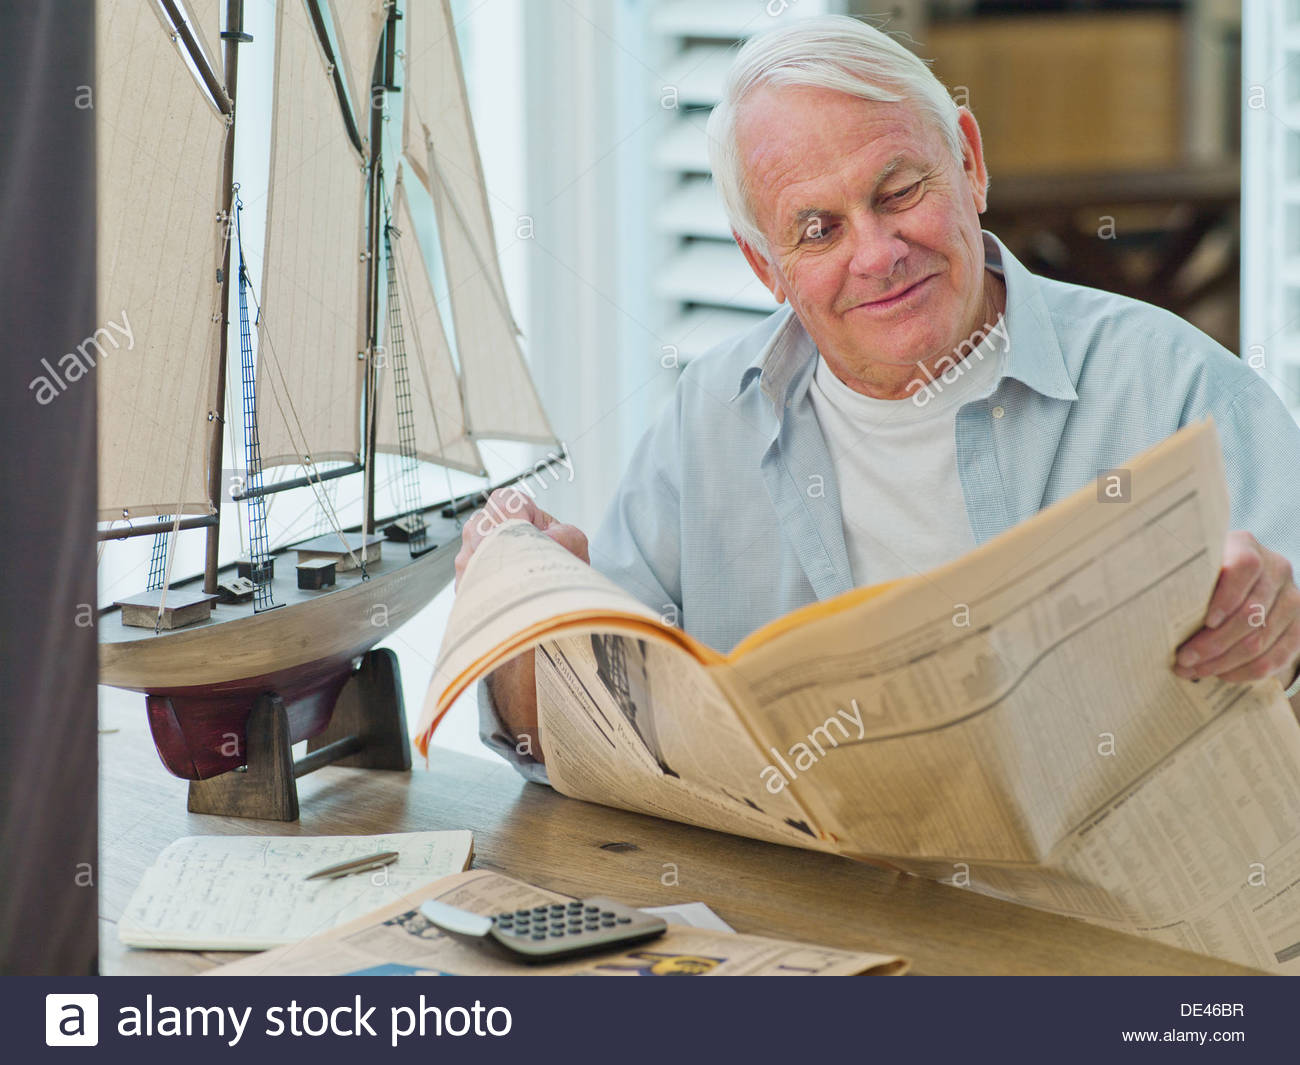 Man reading newspaper near model sailboat - Stock Image